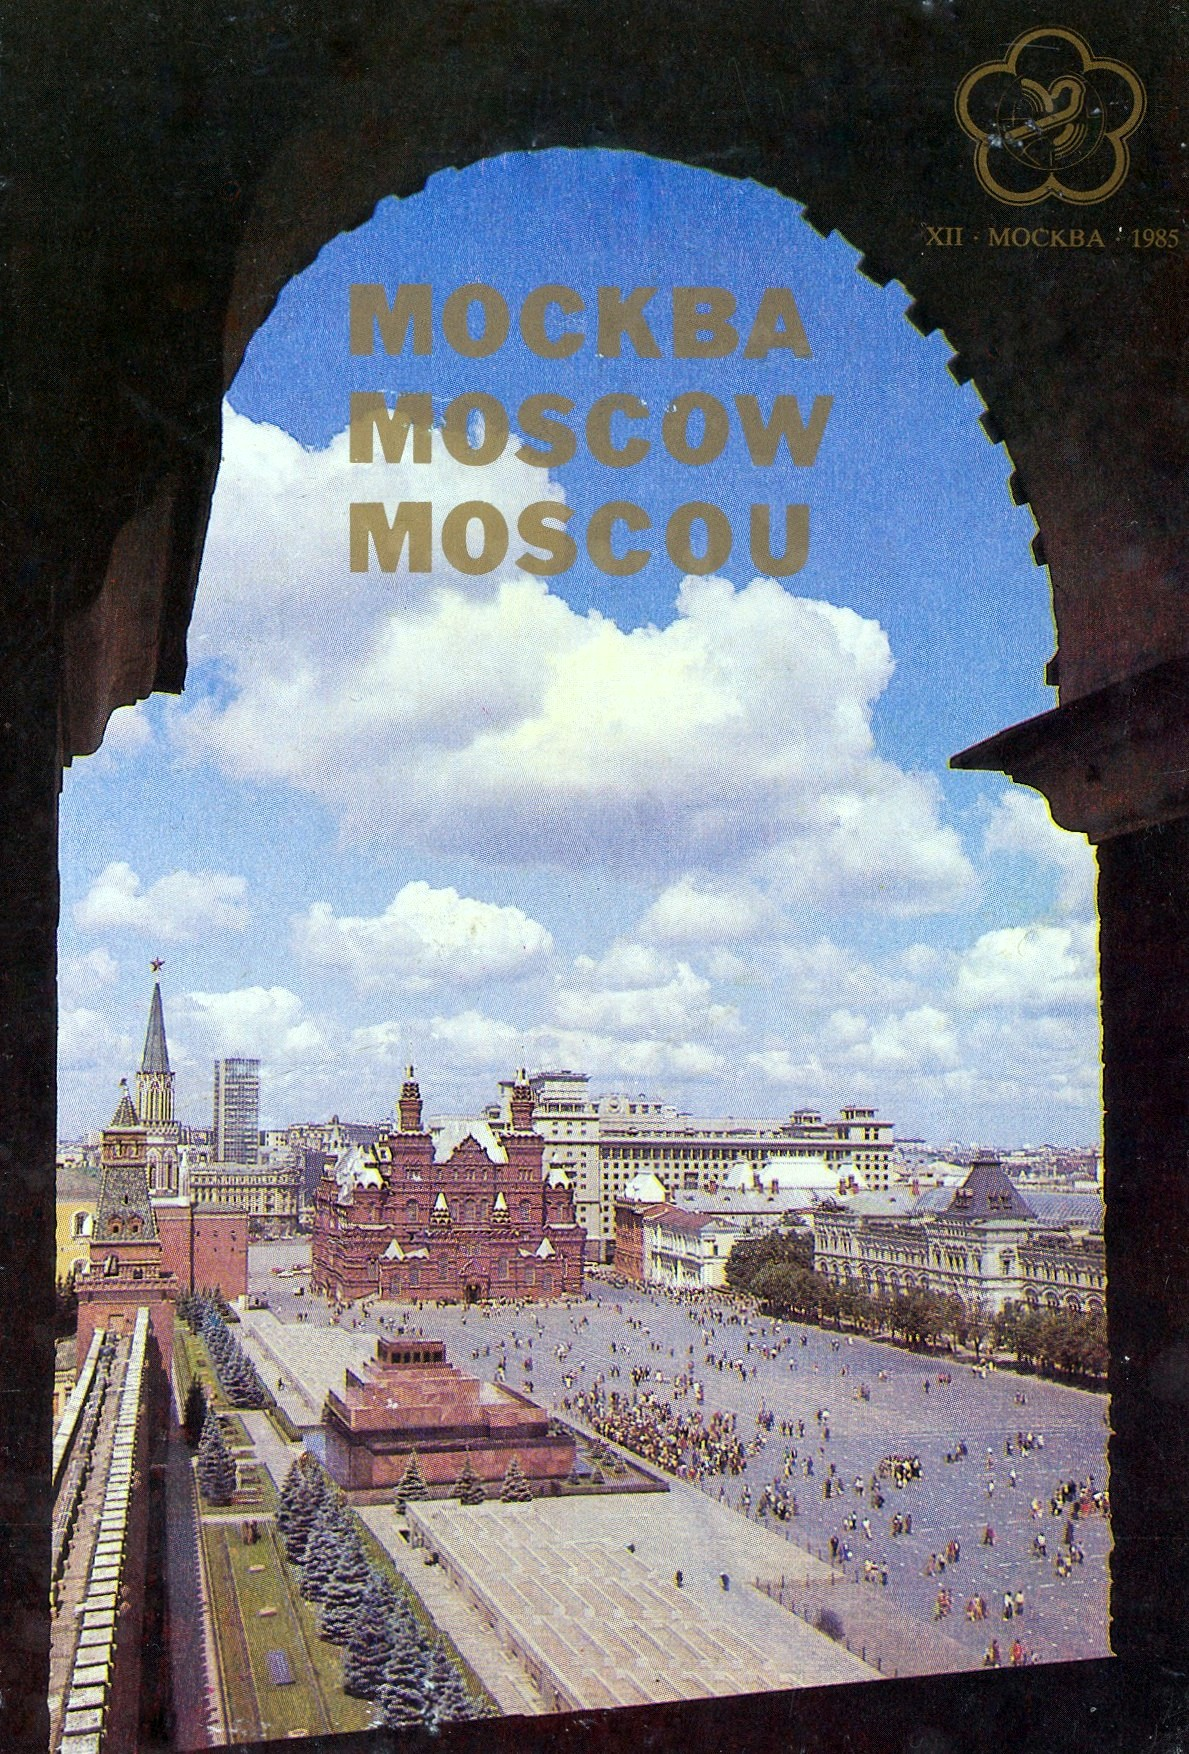 ZAVODFOTO / History of Russian cities in photographs: Moscow in 1985